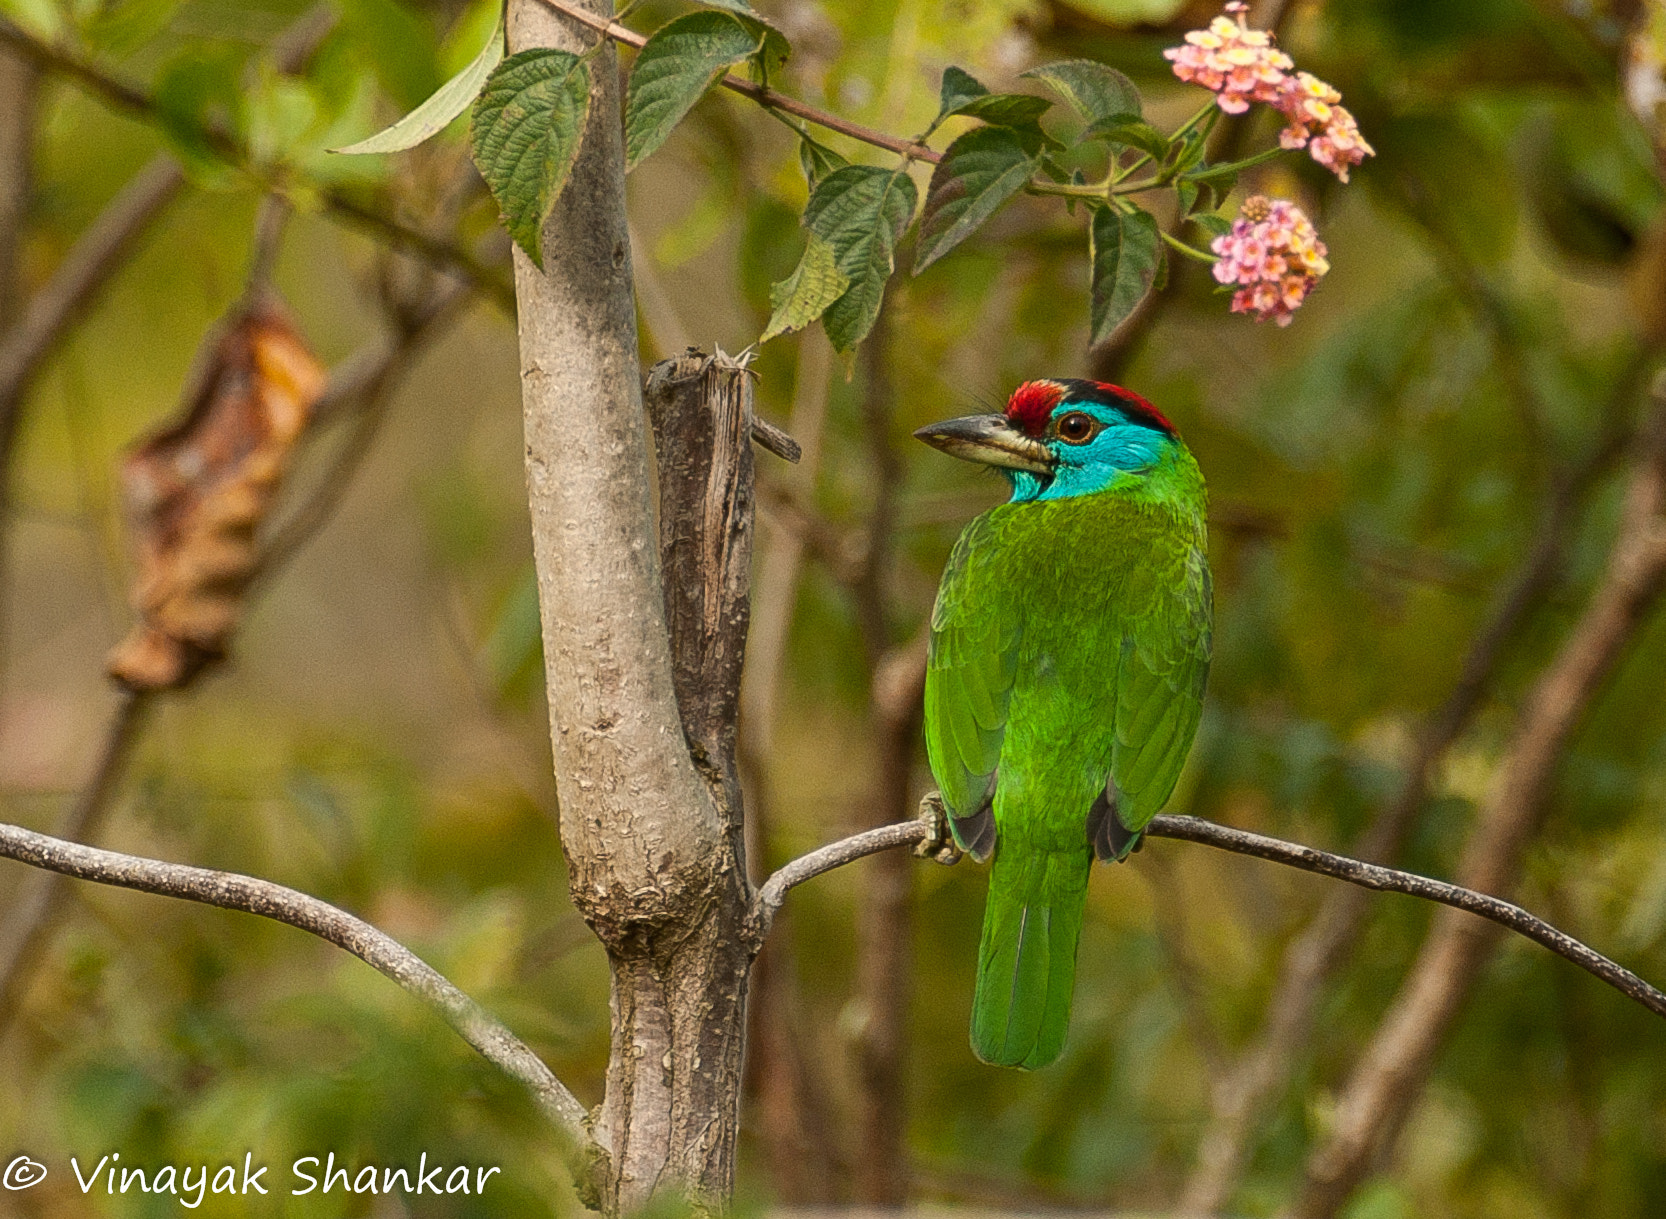 Photograph Blue Throated Barbet - Corbett National Park, India by Vinayak Shankar on 500px